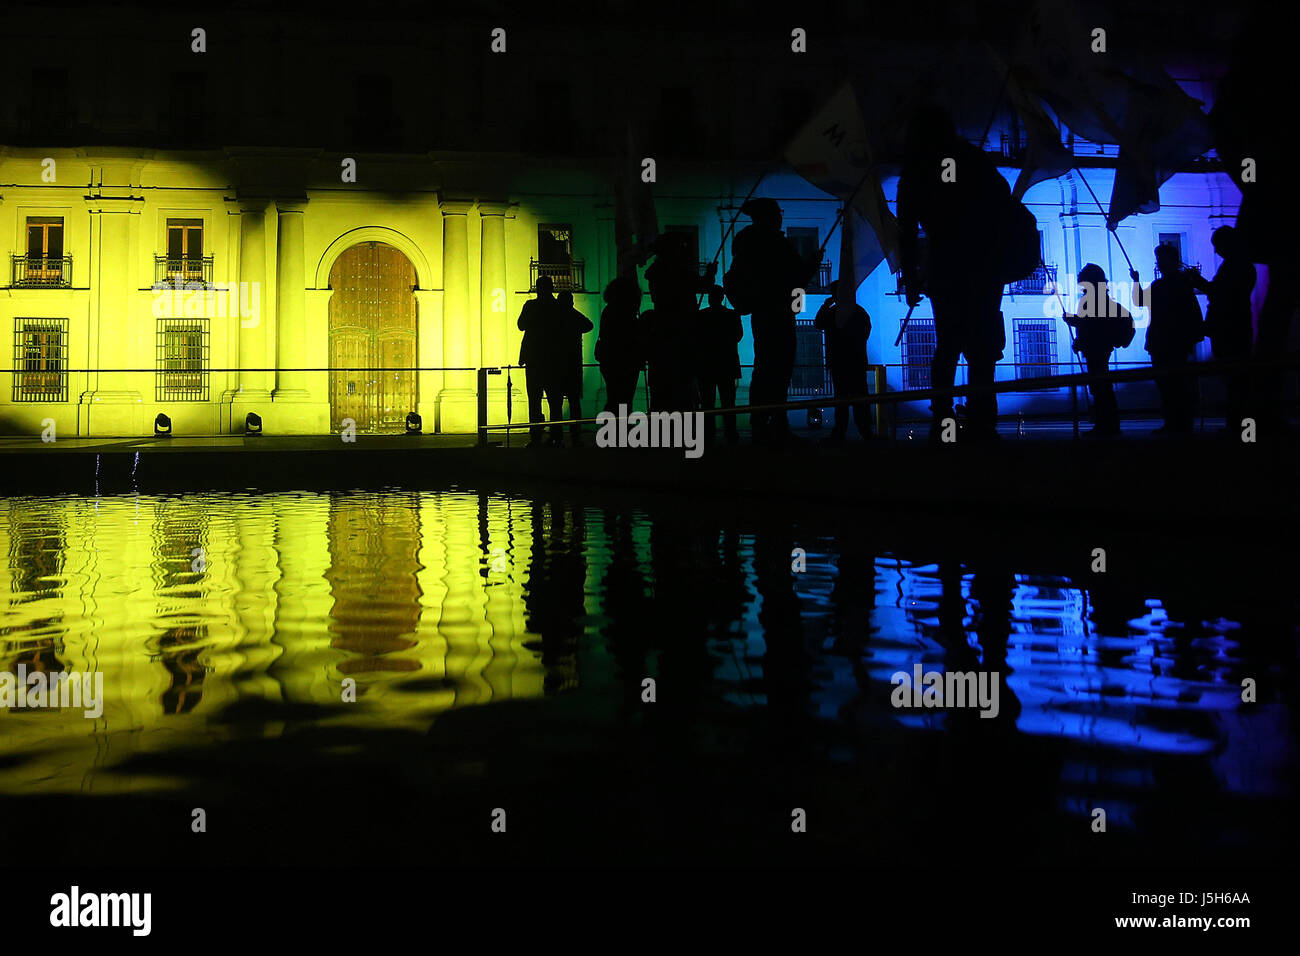 People observe the facade of La Moneda Palace illuminated with the colors of the rainbow flag in Santiago, Chile, - Stock Image